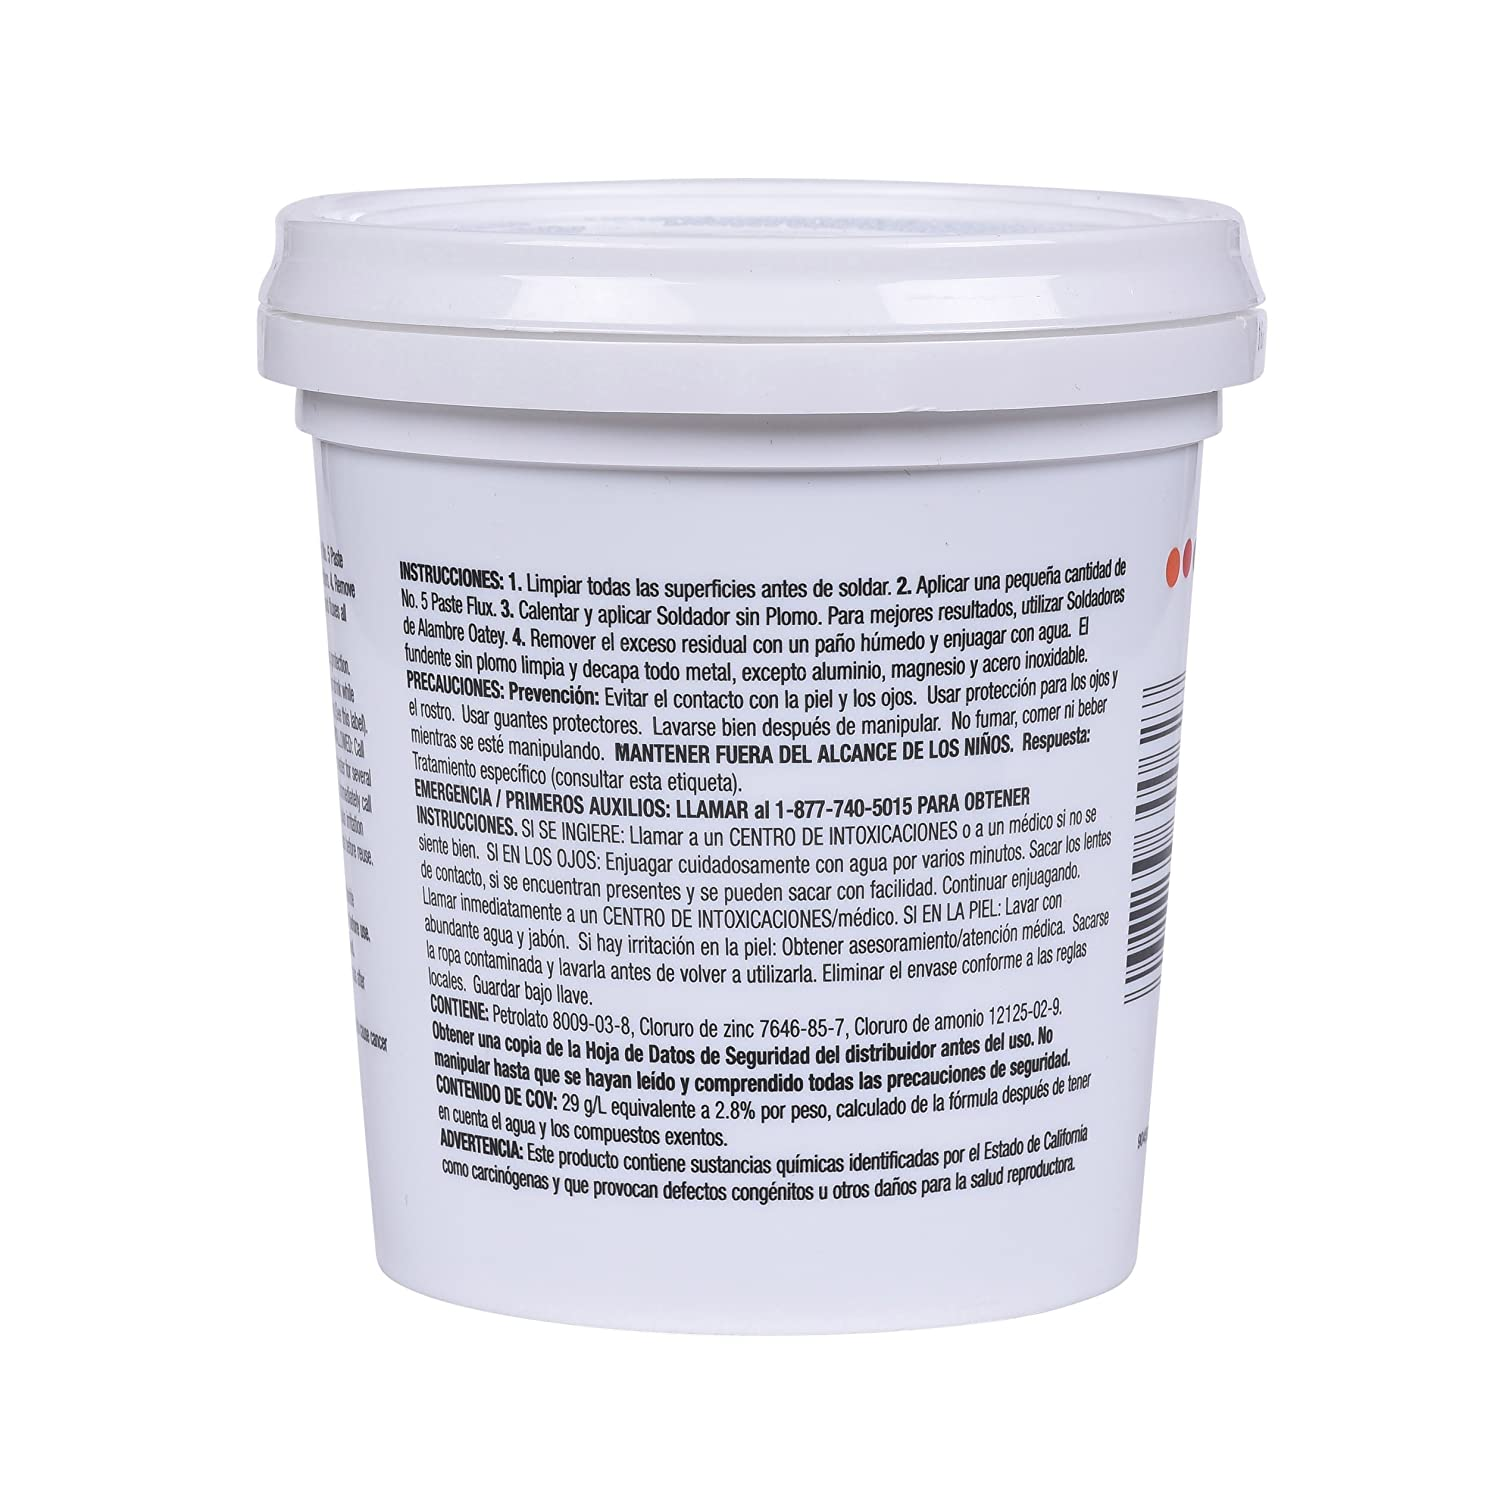 Oatey 30062 No. 5 Paste Flux, Hot Weather 16-Ounce - Power Soldering Accessories - Amazon.com